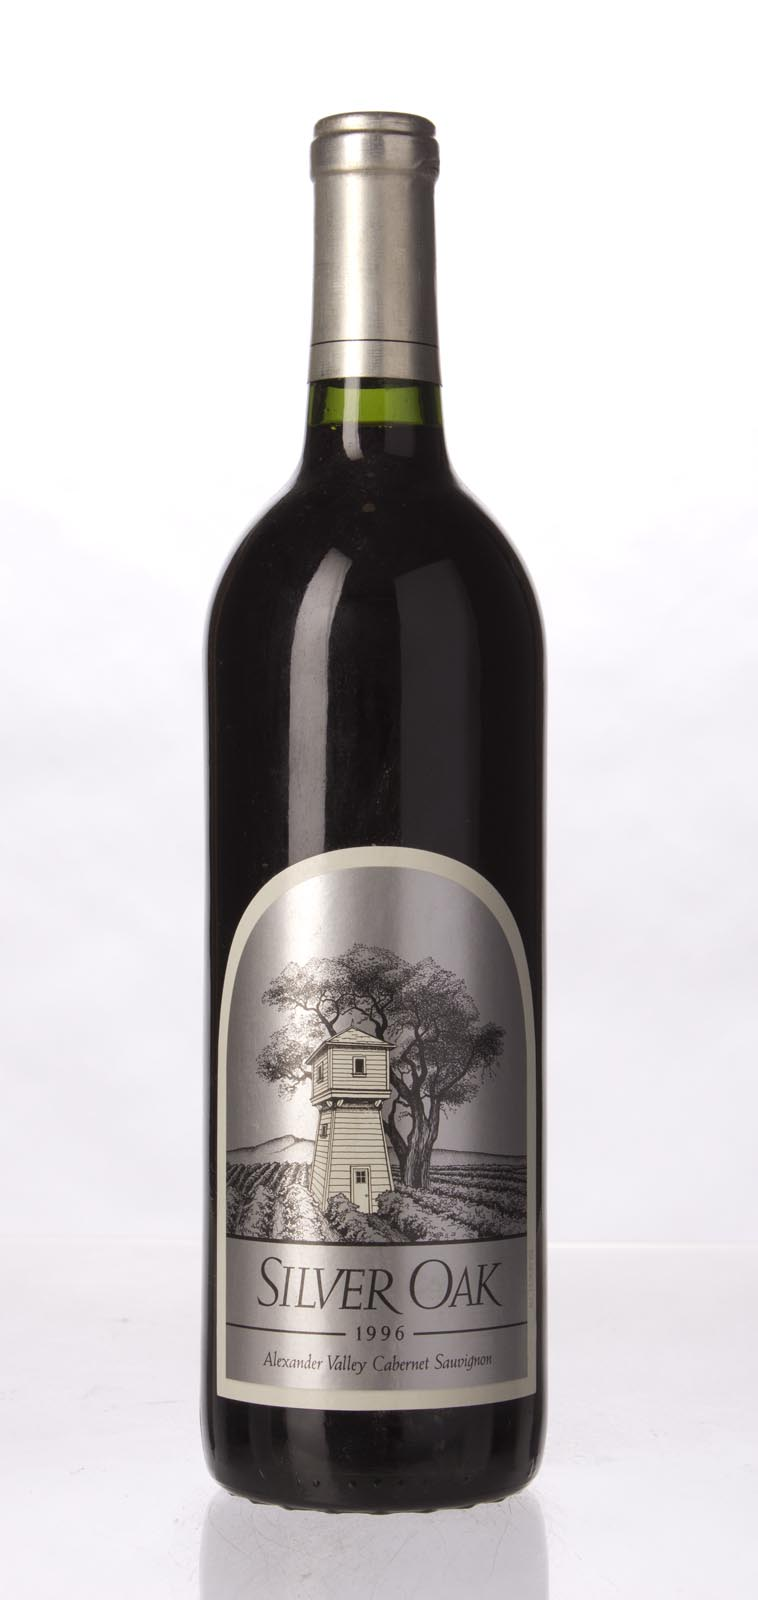 Silver Oak Cabernet Sauvignon Alexander Valley 1996, 750mL (WA92) from The BPW - Merchants of rare and fine wines.